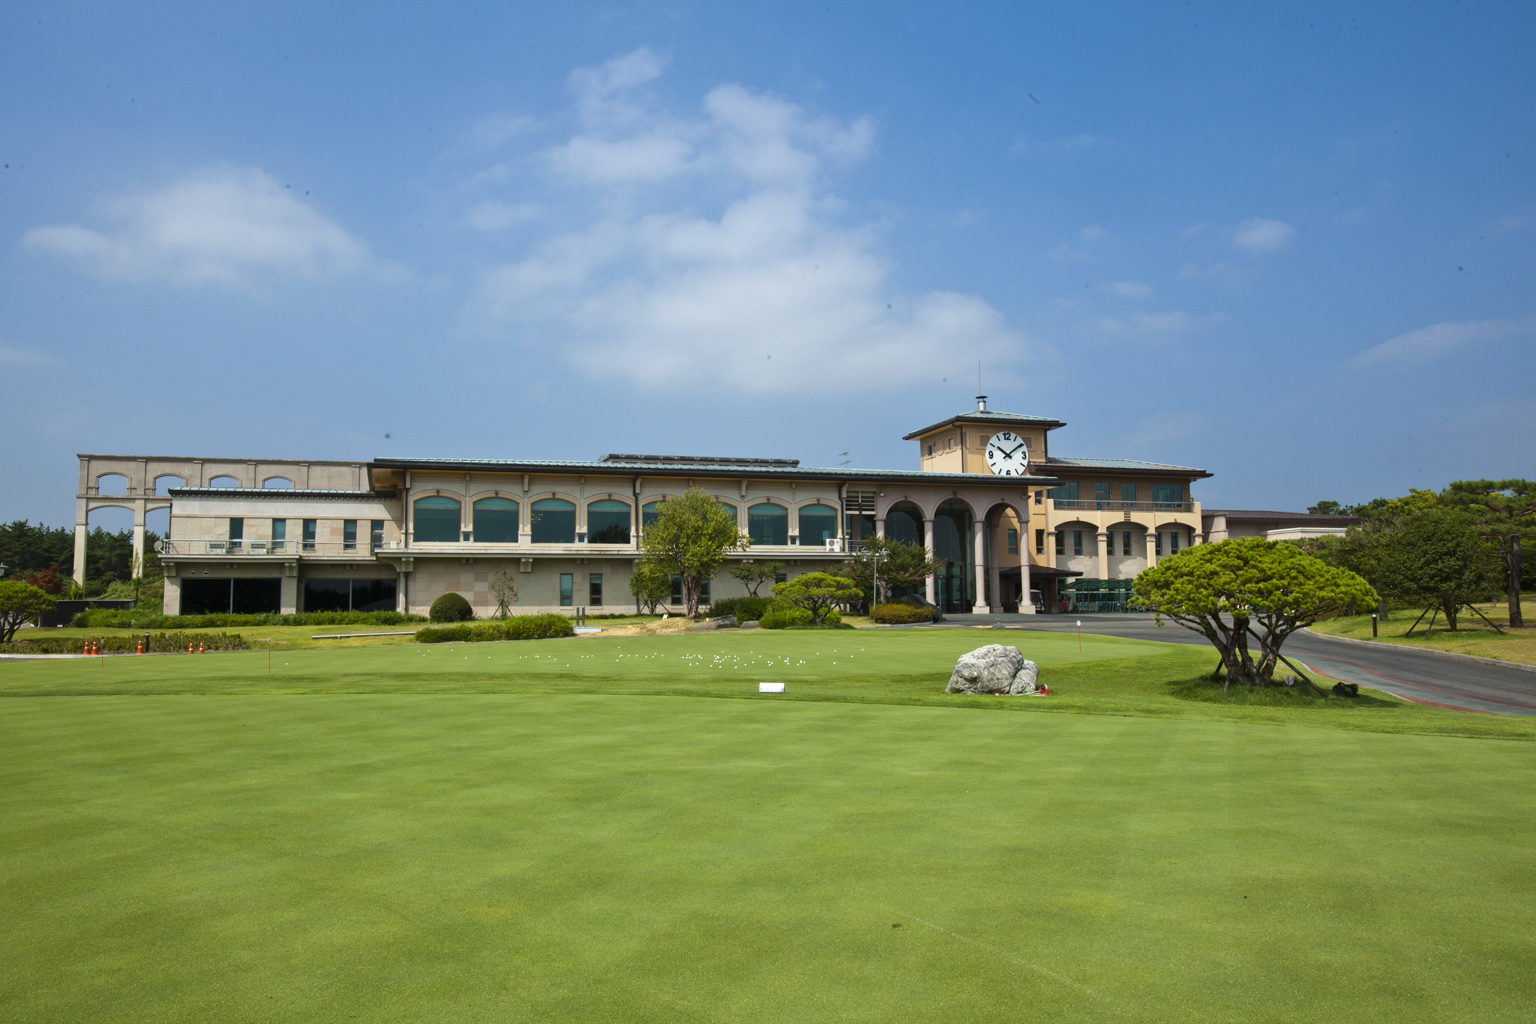 A view of Asiad Country Club.